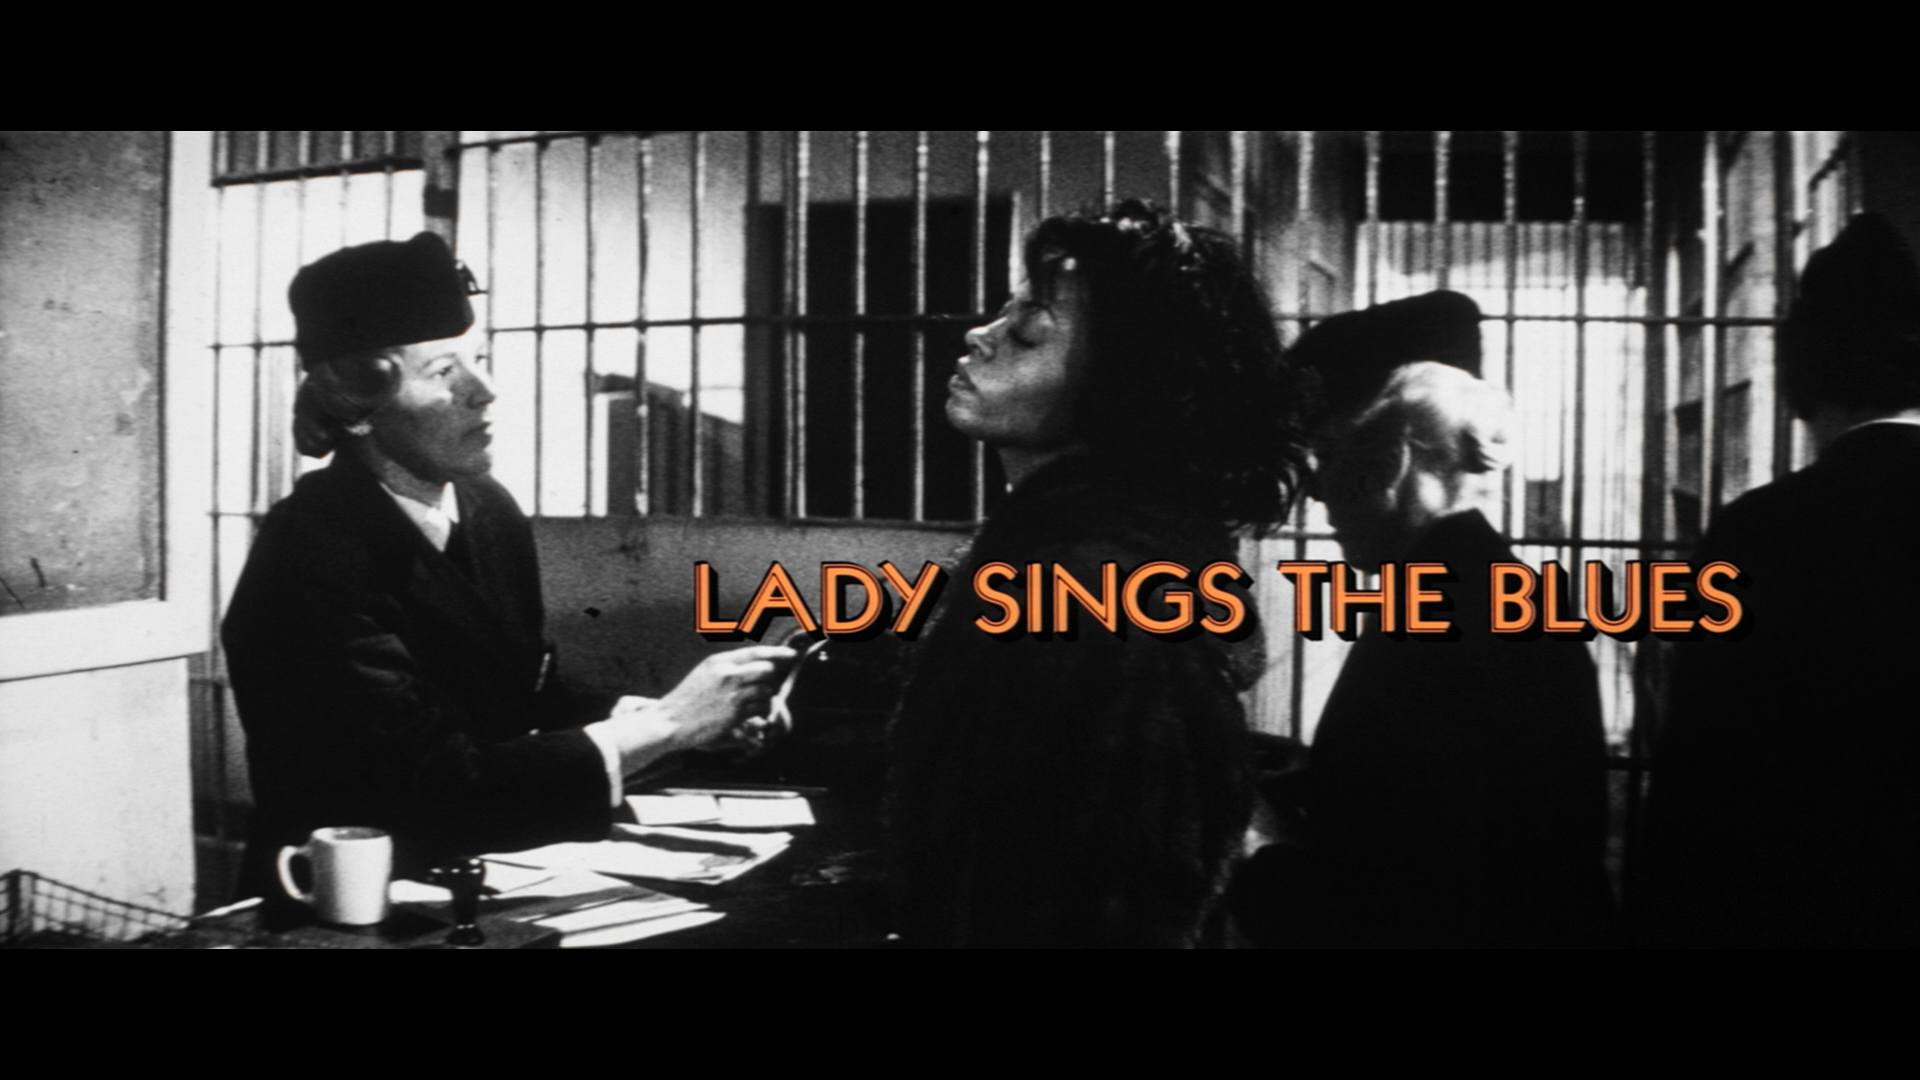 lady sings the blues title